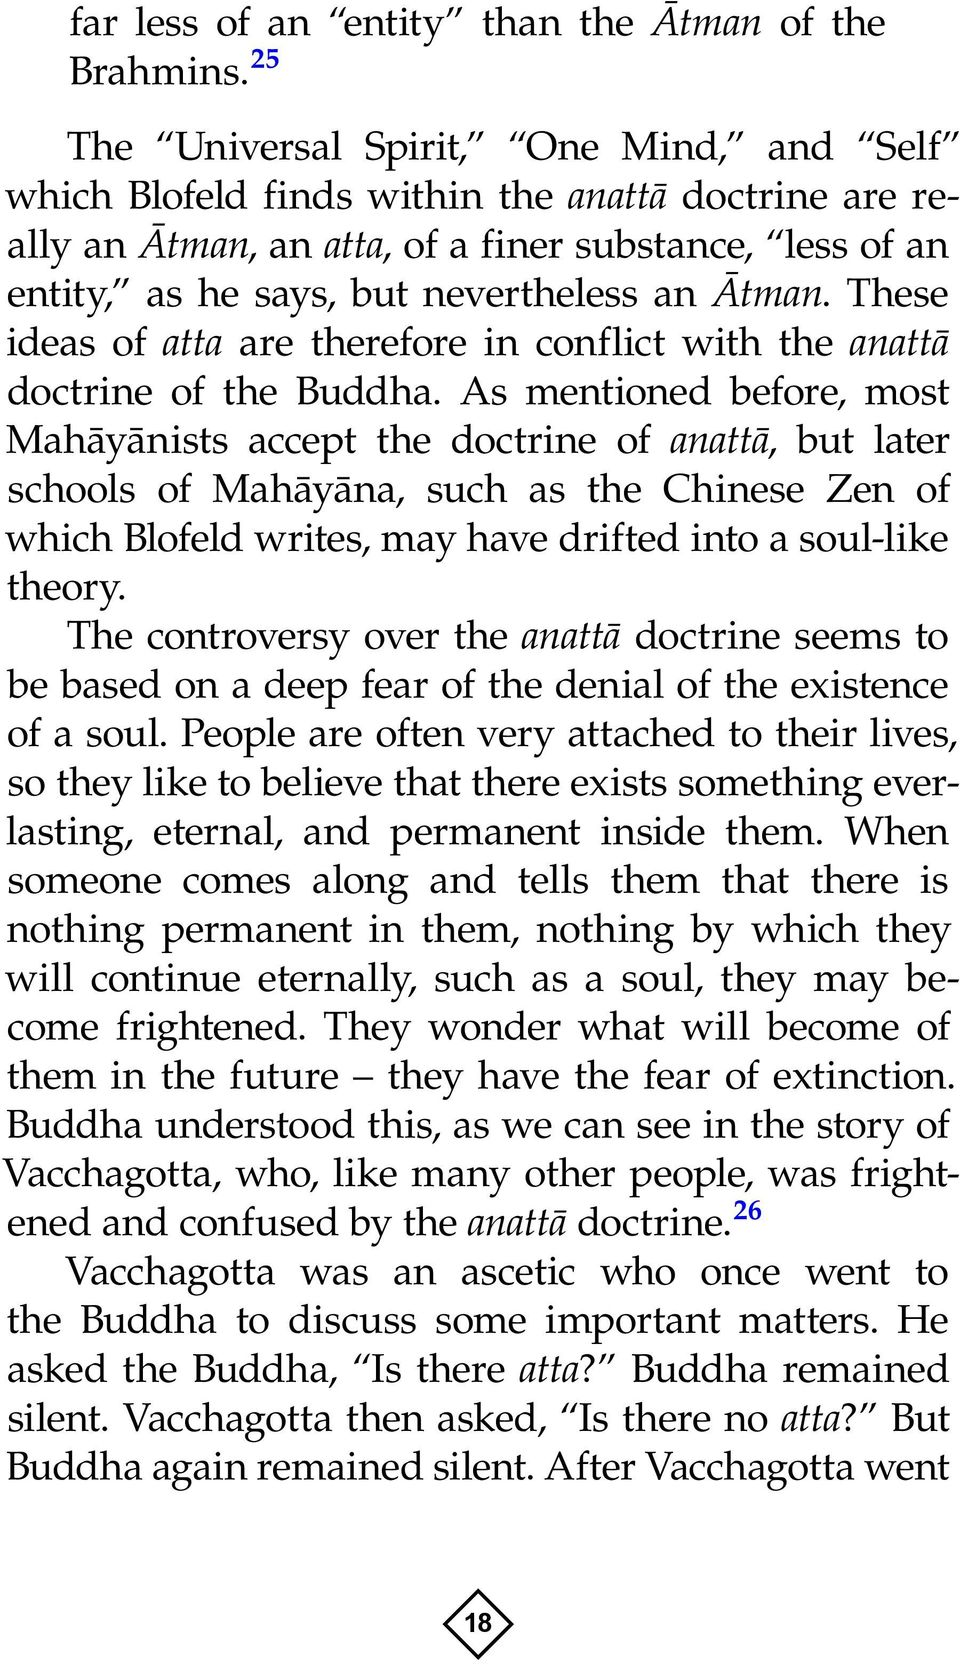 These ideas of atta are therefore in conflict with the anattà doctrine of the Buddha.